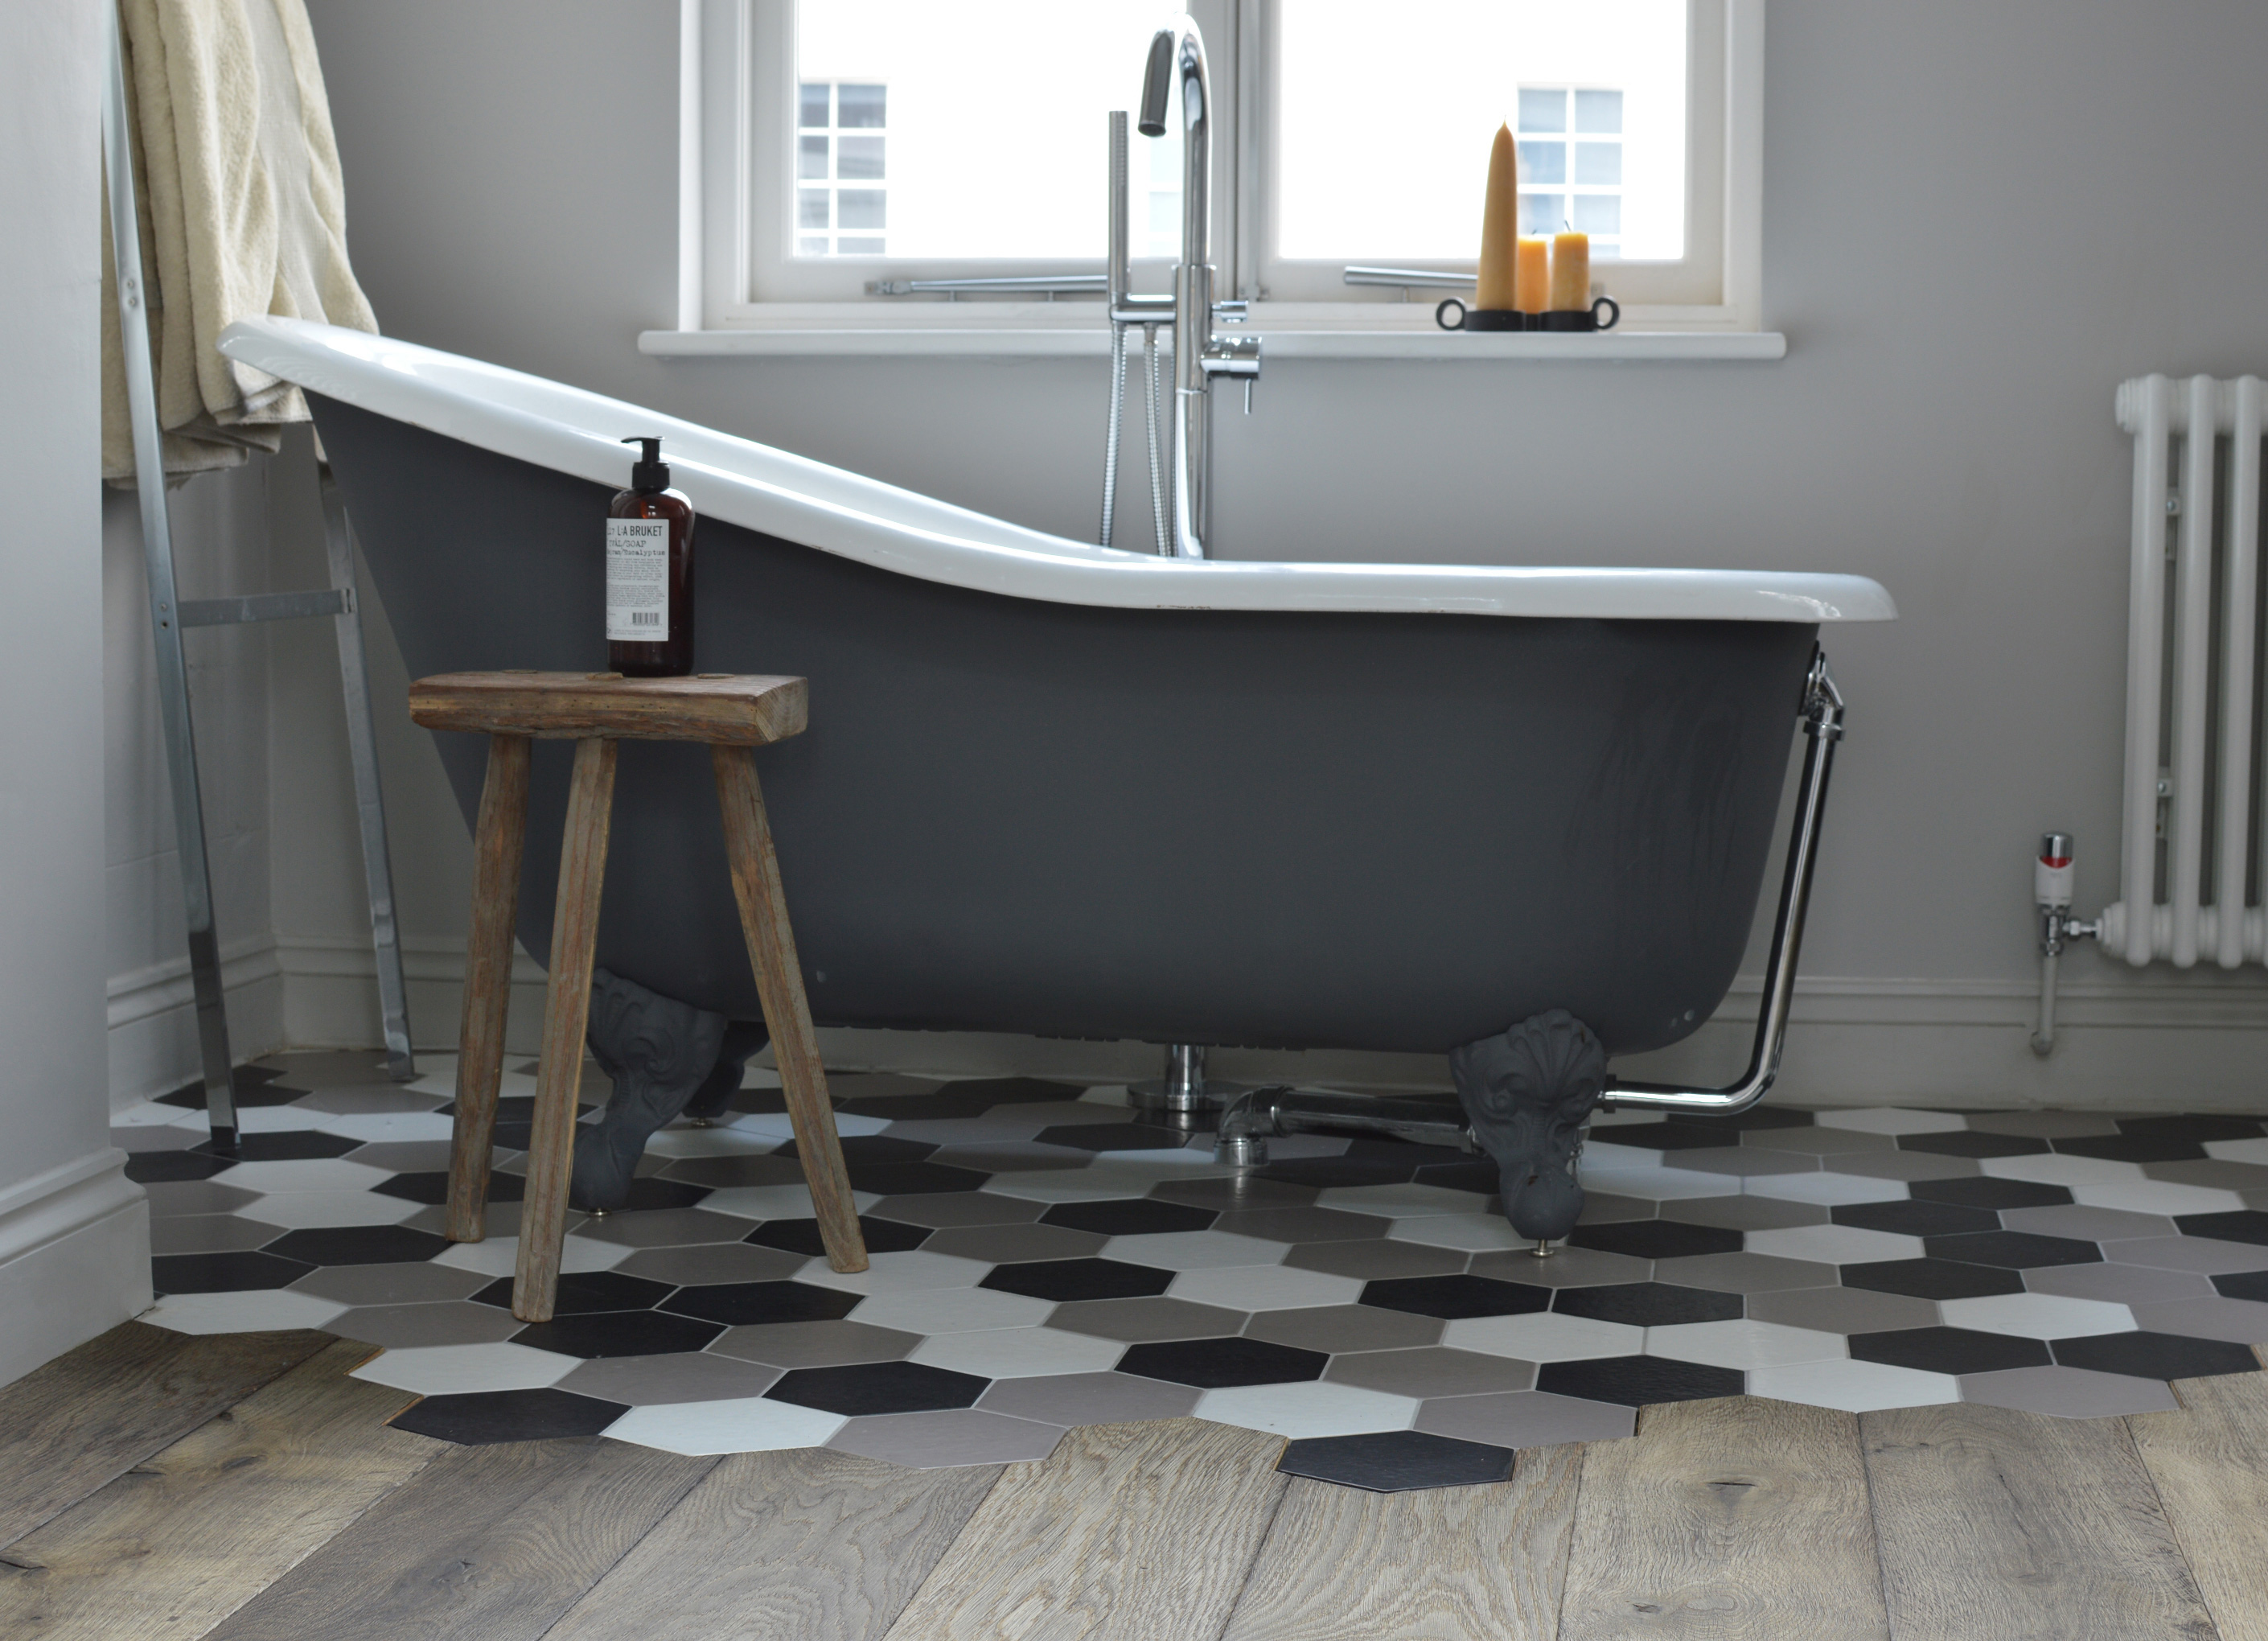 Oak magma stromboli plank meeting hexagon tiles with a free standing bath and wooden stool